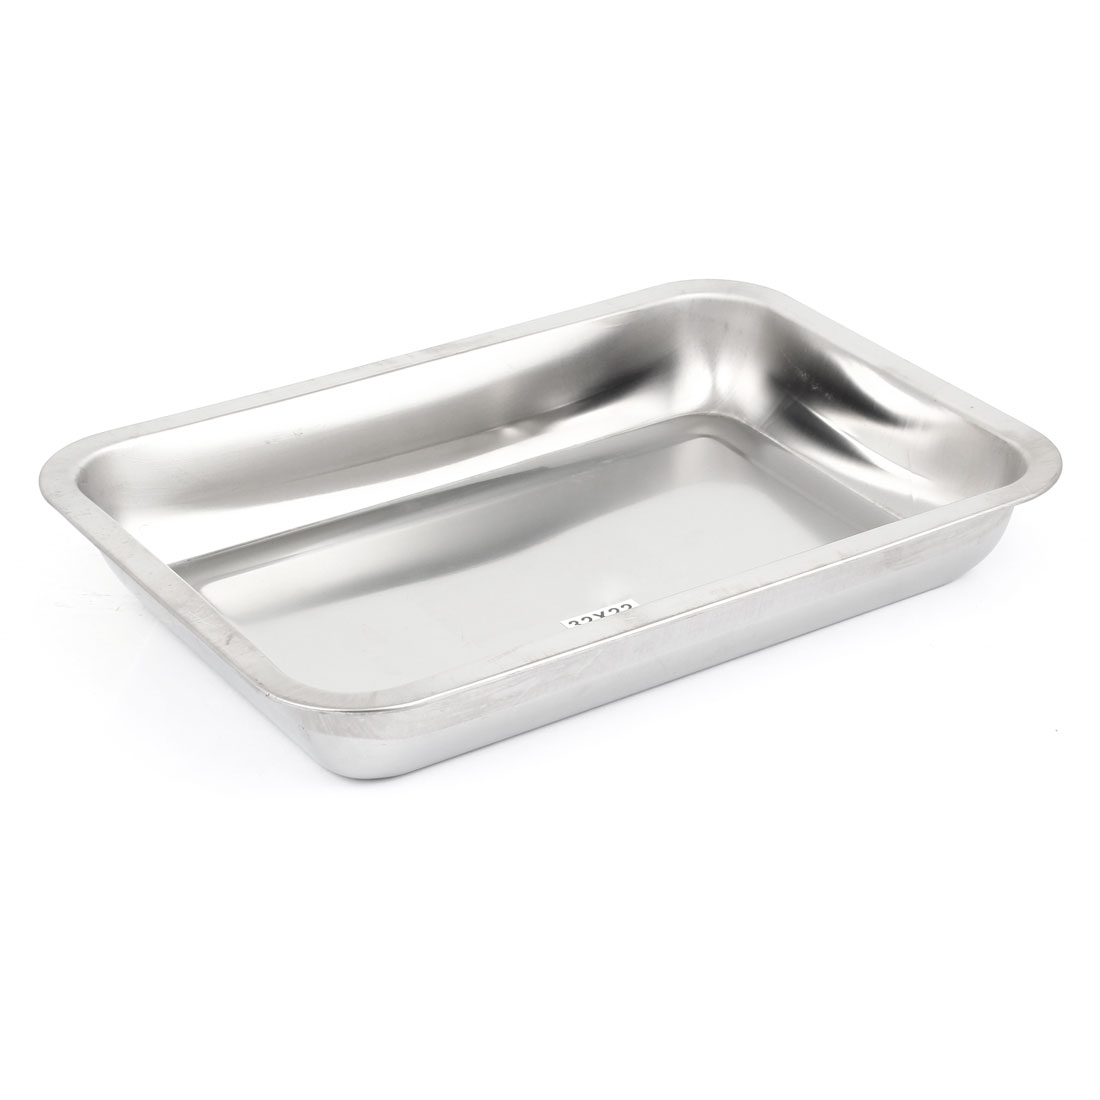 Rectangle Shape Stainless Steel Food Medicine Plate Tray 32 x 22cm